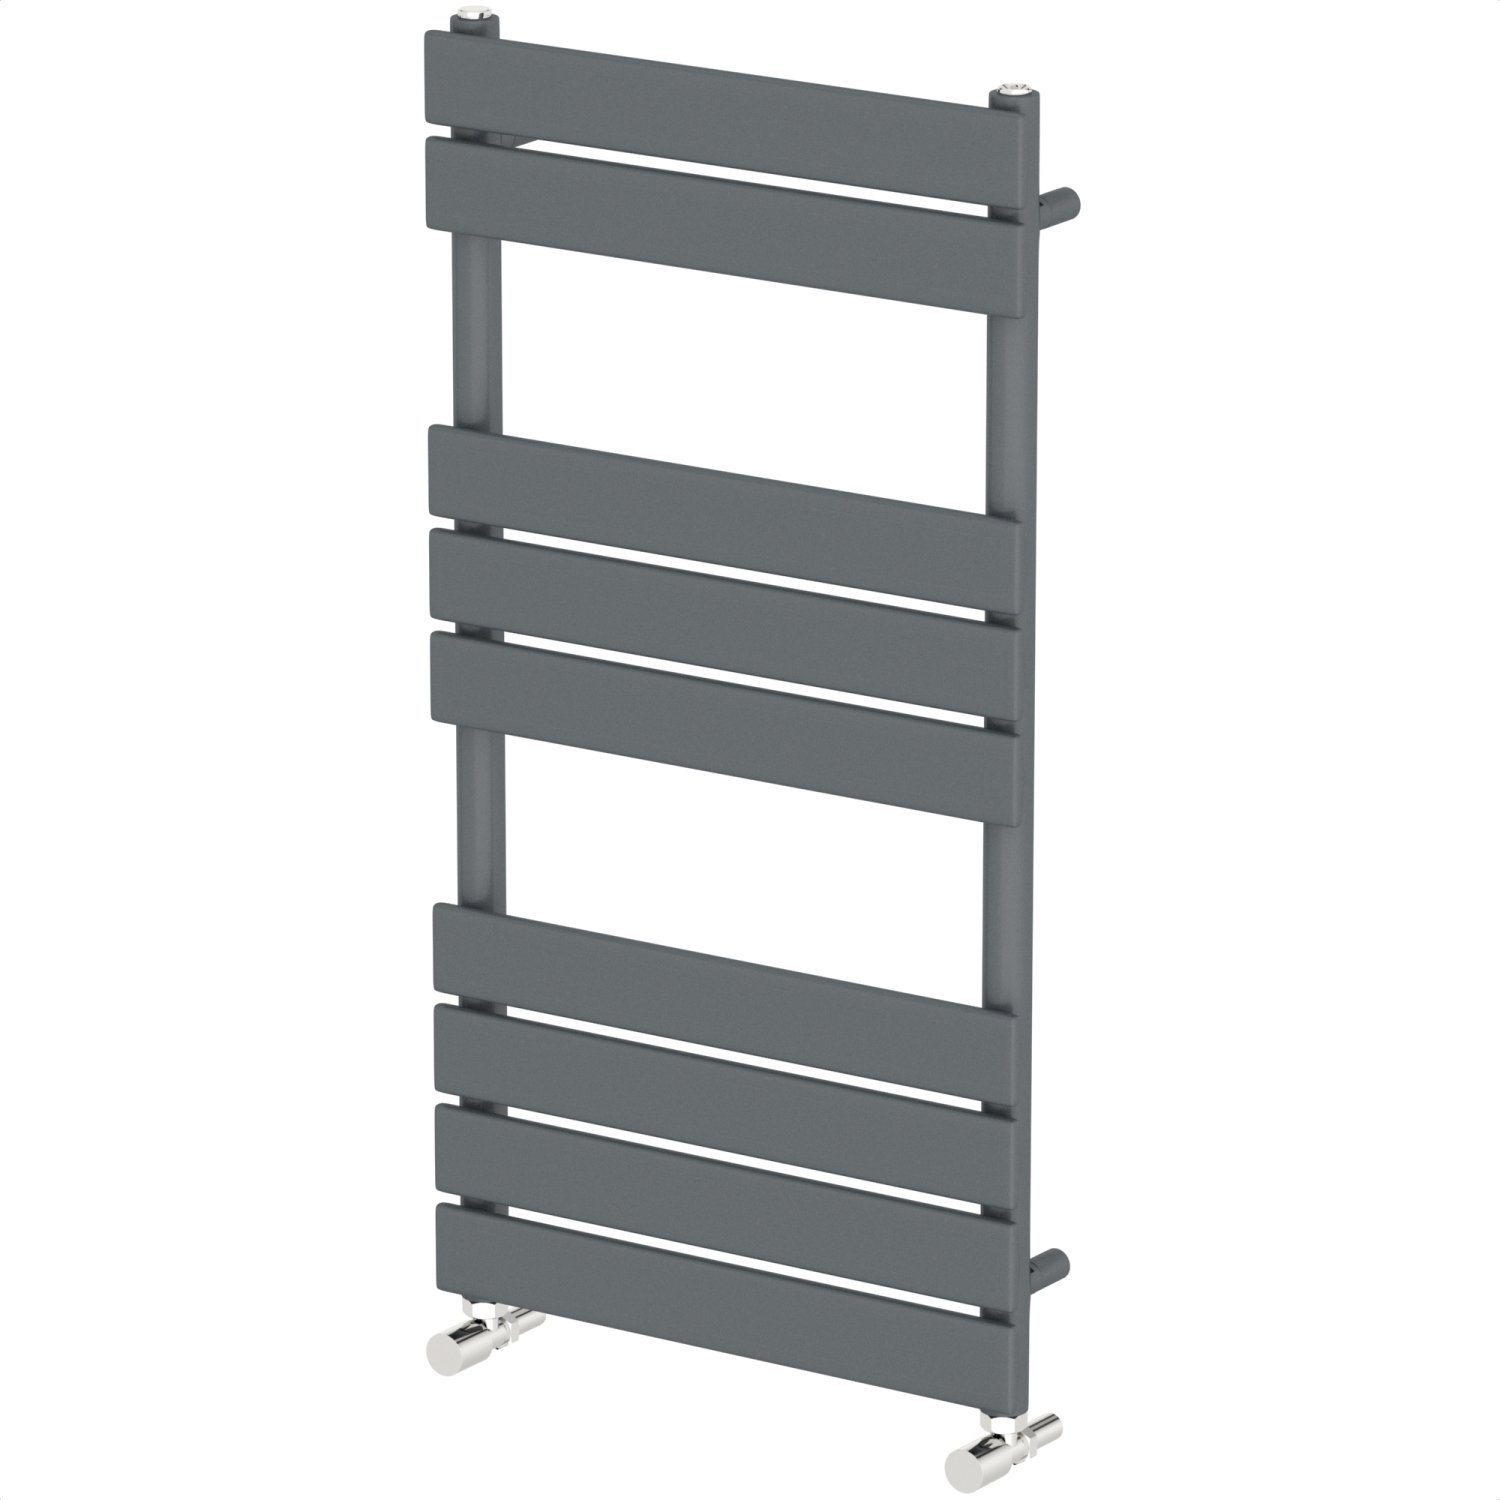 DuraTherm Modern Bathroom Flat Panel Heated Towel Rail Radiator Anthracite 950mm x 500mm